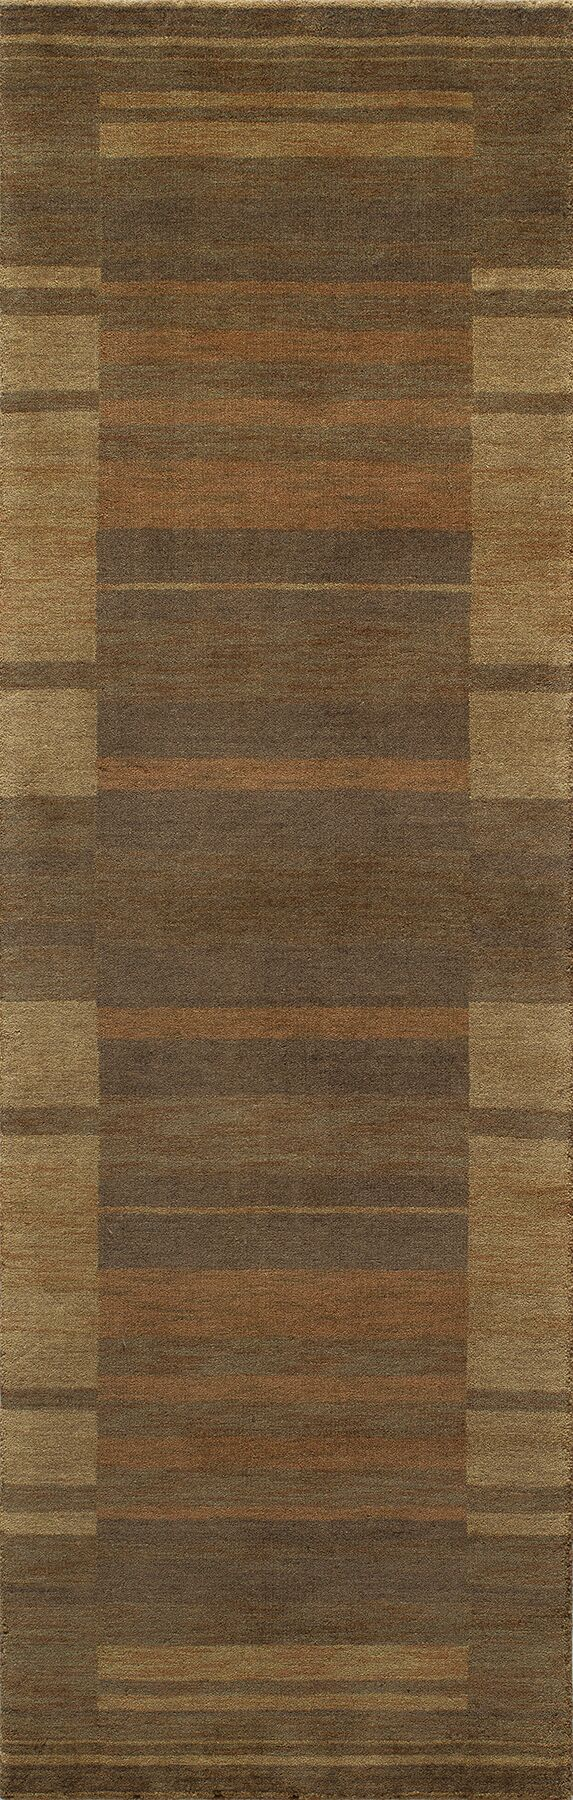 Donaghy Hand-Woven Brown/Yellow Area Rug Rug Size: Rectangle 7'6